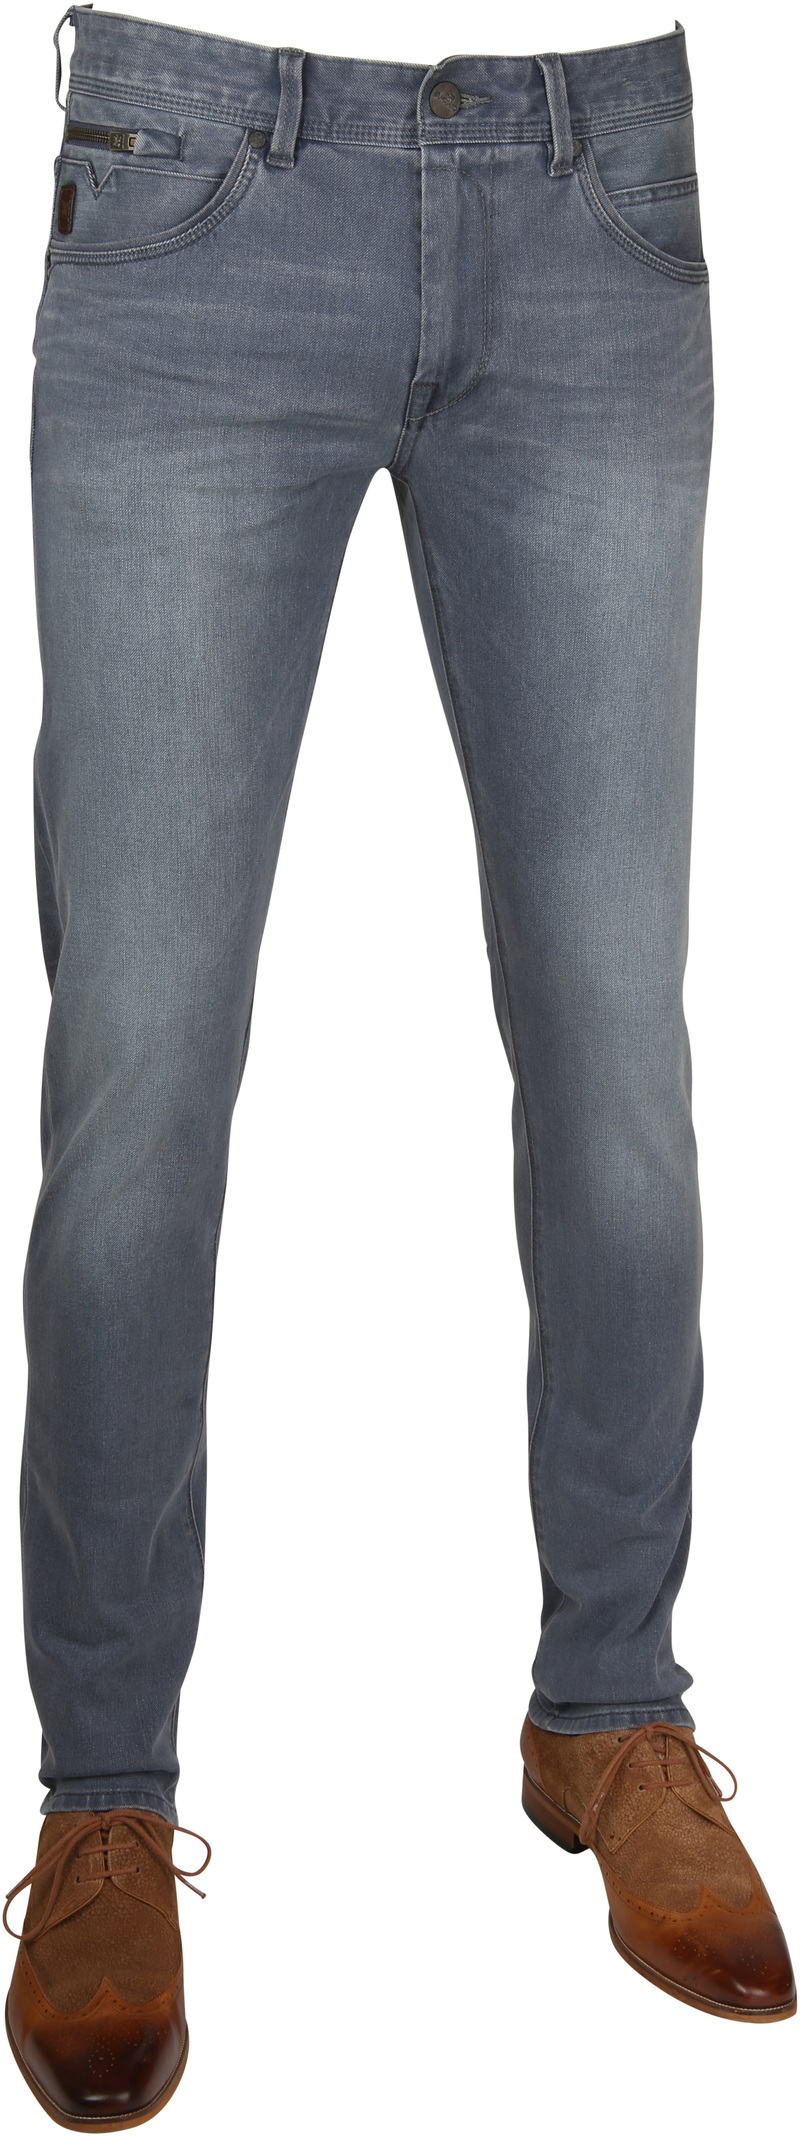 Vanguard V850 Rider Grey Jeans photo 0